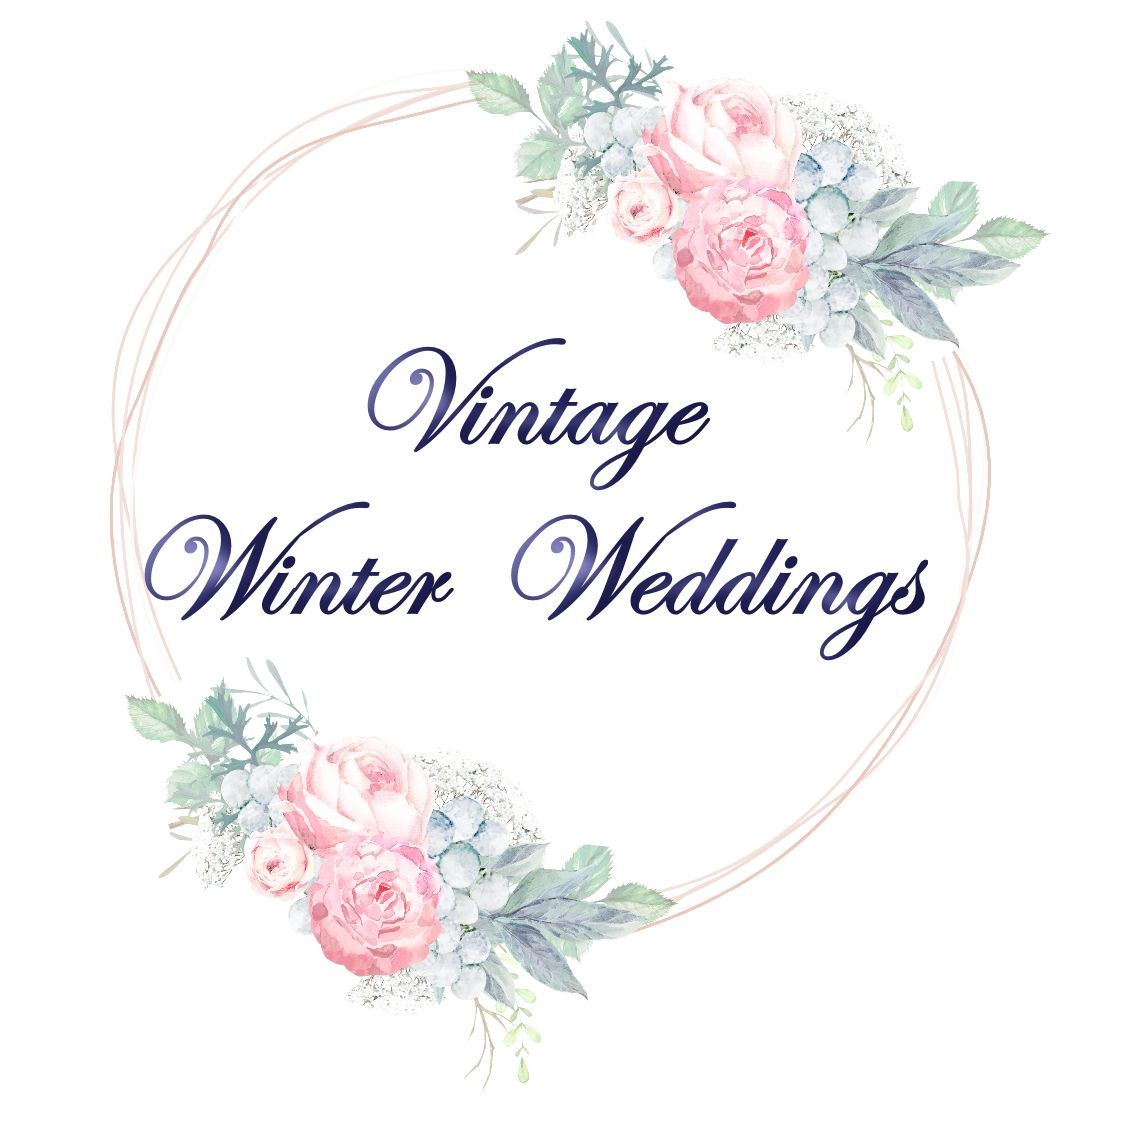 vintage winter weddings logo